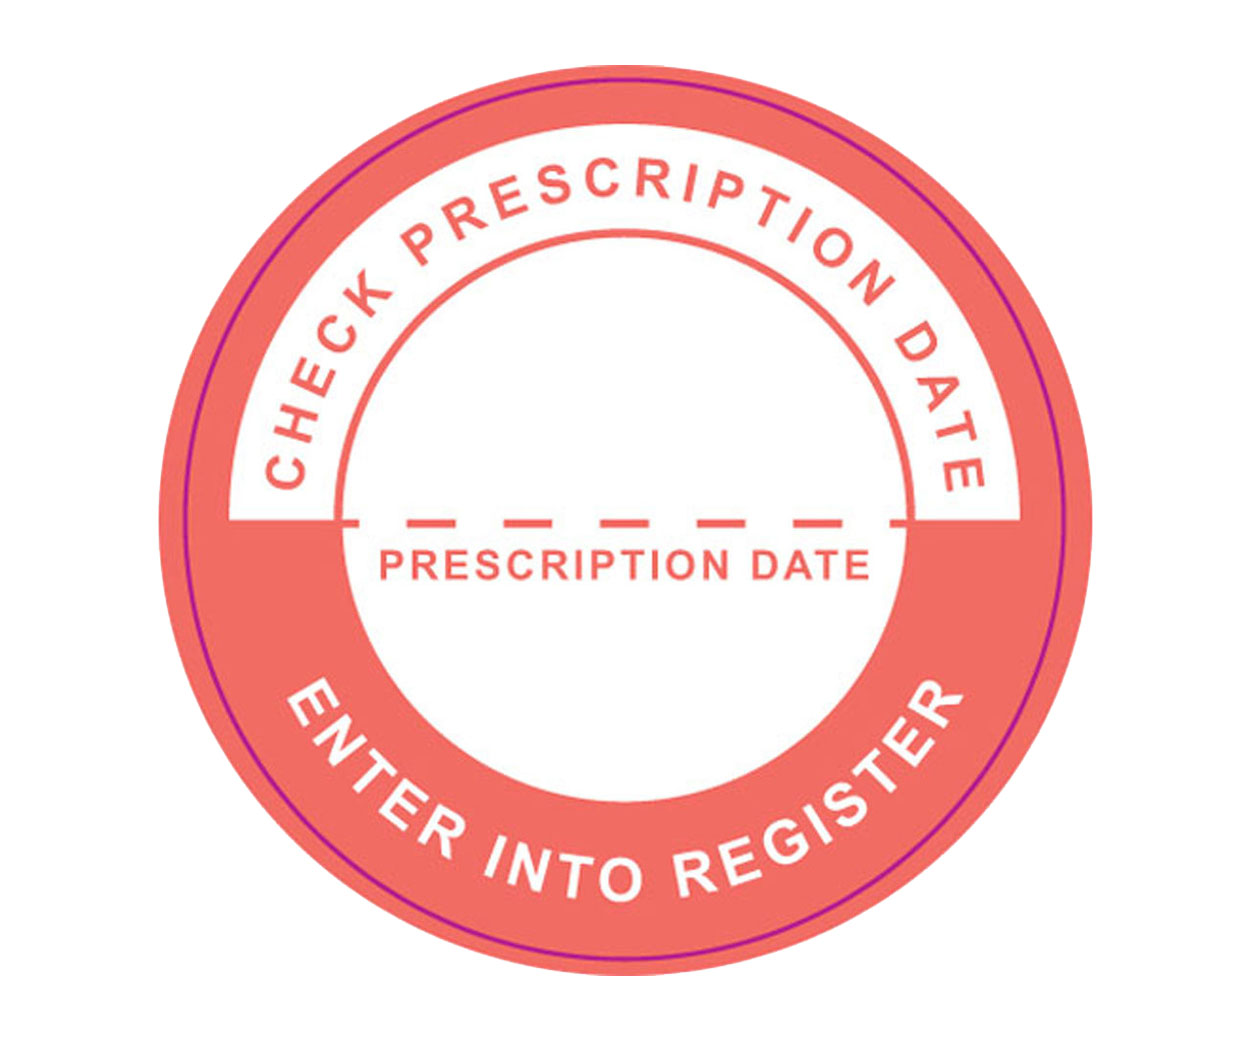 Check Prescription Date Prescription Alert Stickers - Pack of 1000